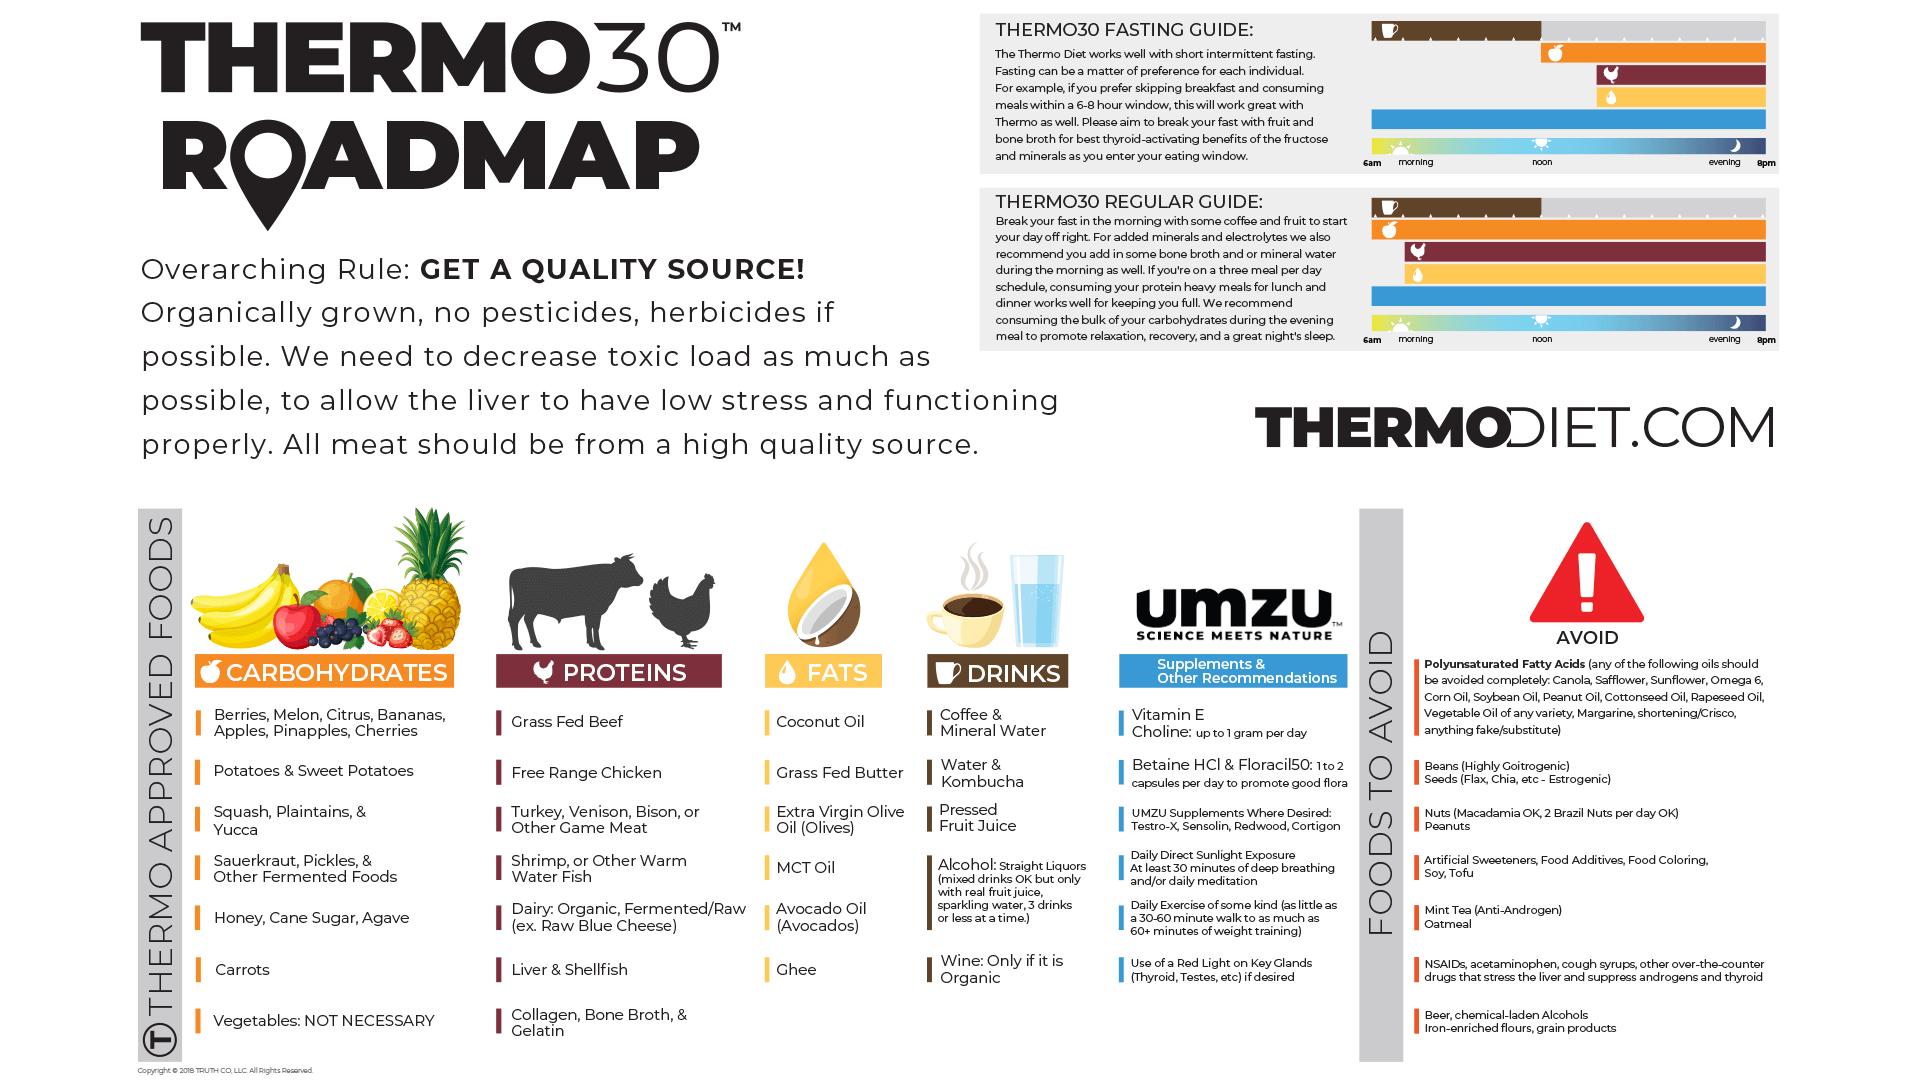 Thermo 30 day roadmap